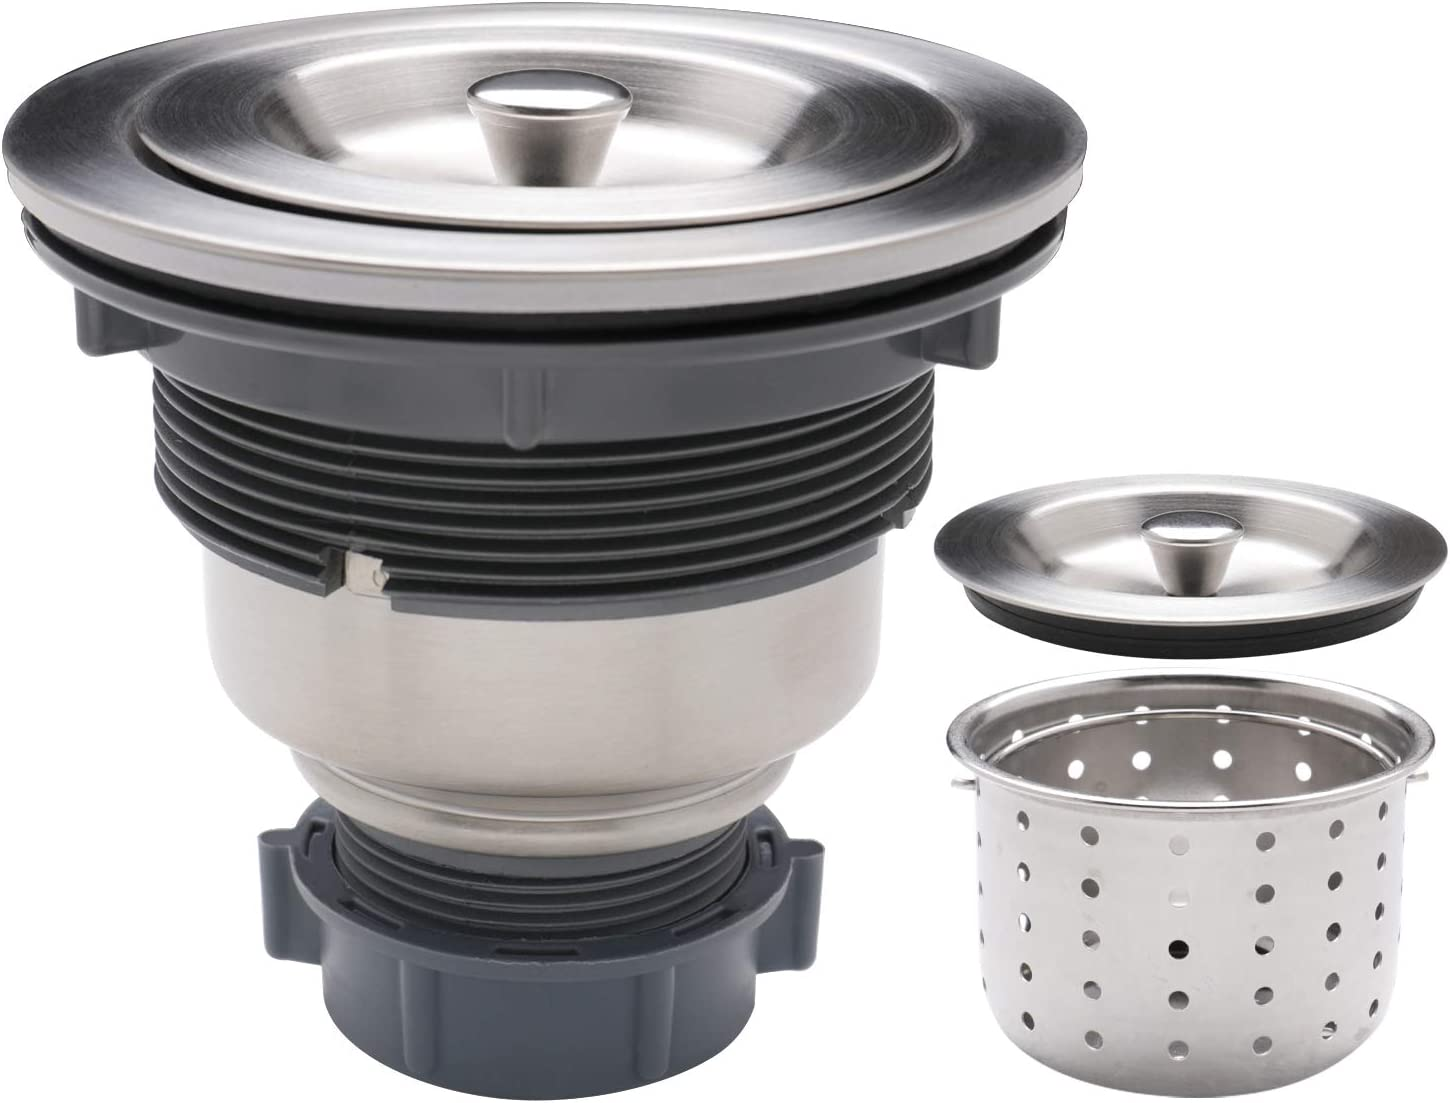 Enbol SS-1 Kitchen Sink Strainer, 3-1/2-inch Sink Drain Strainer Assembly with Removable Deep Waste Basket, Sealing Lid, Stainless Steel